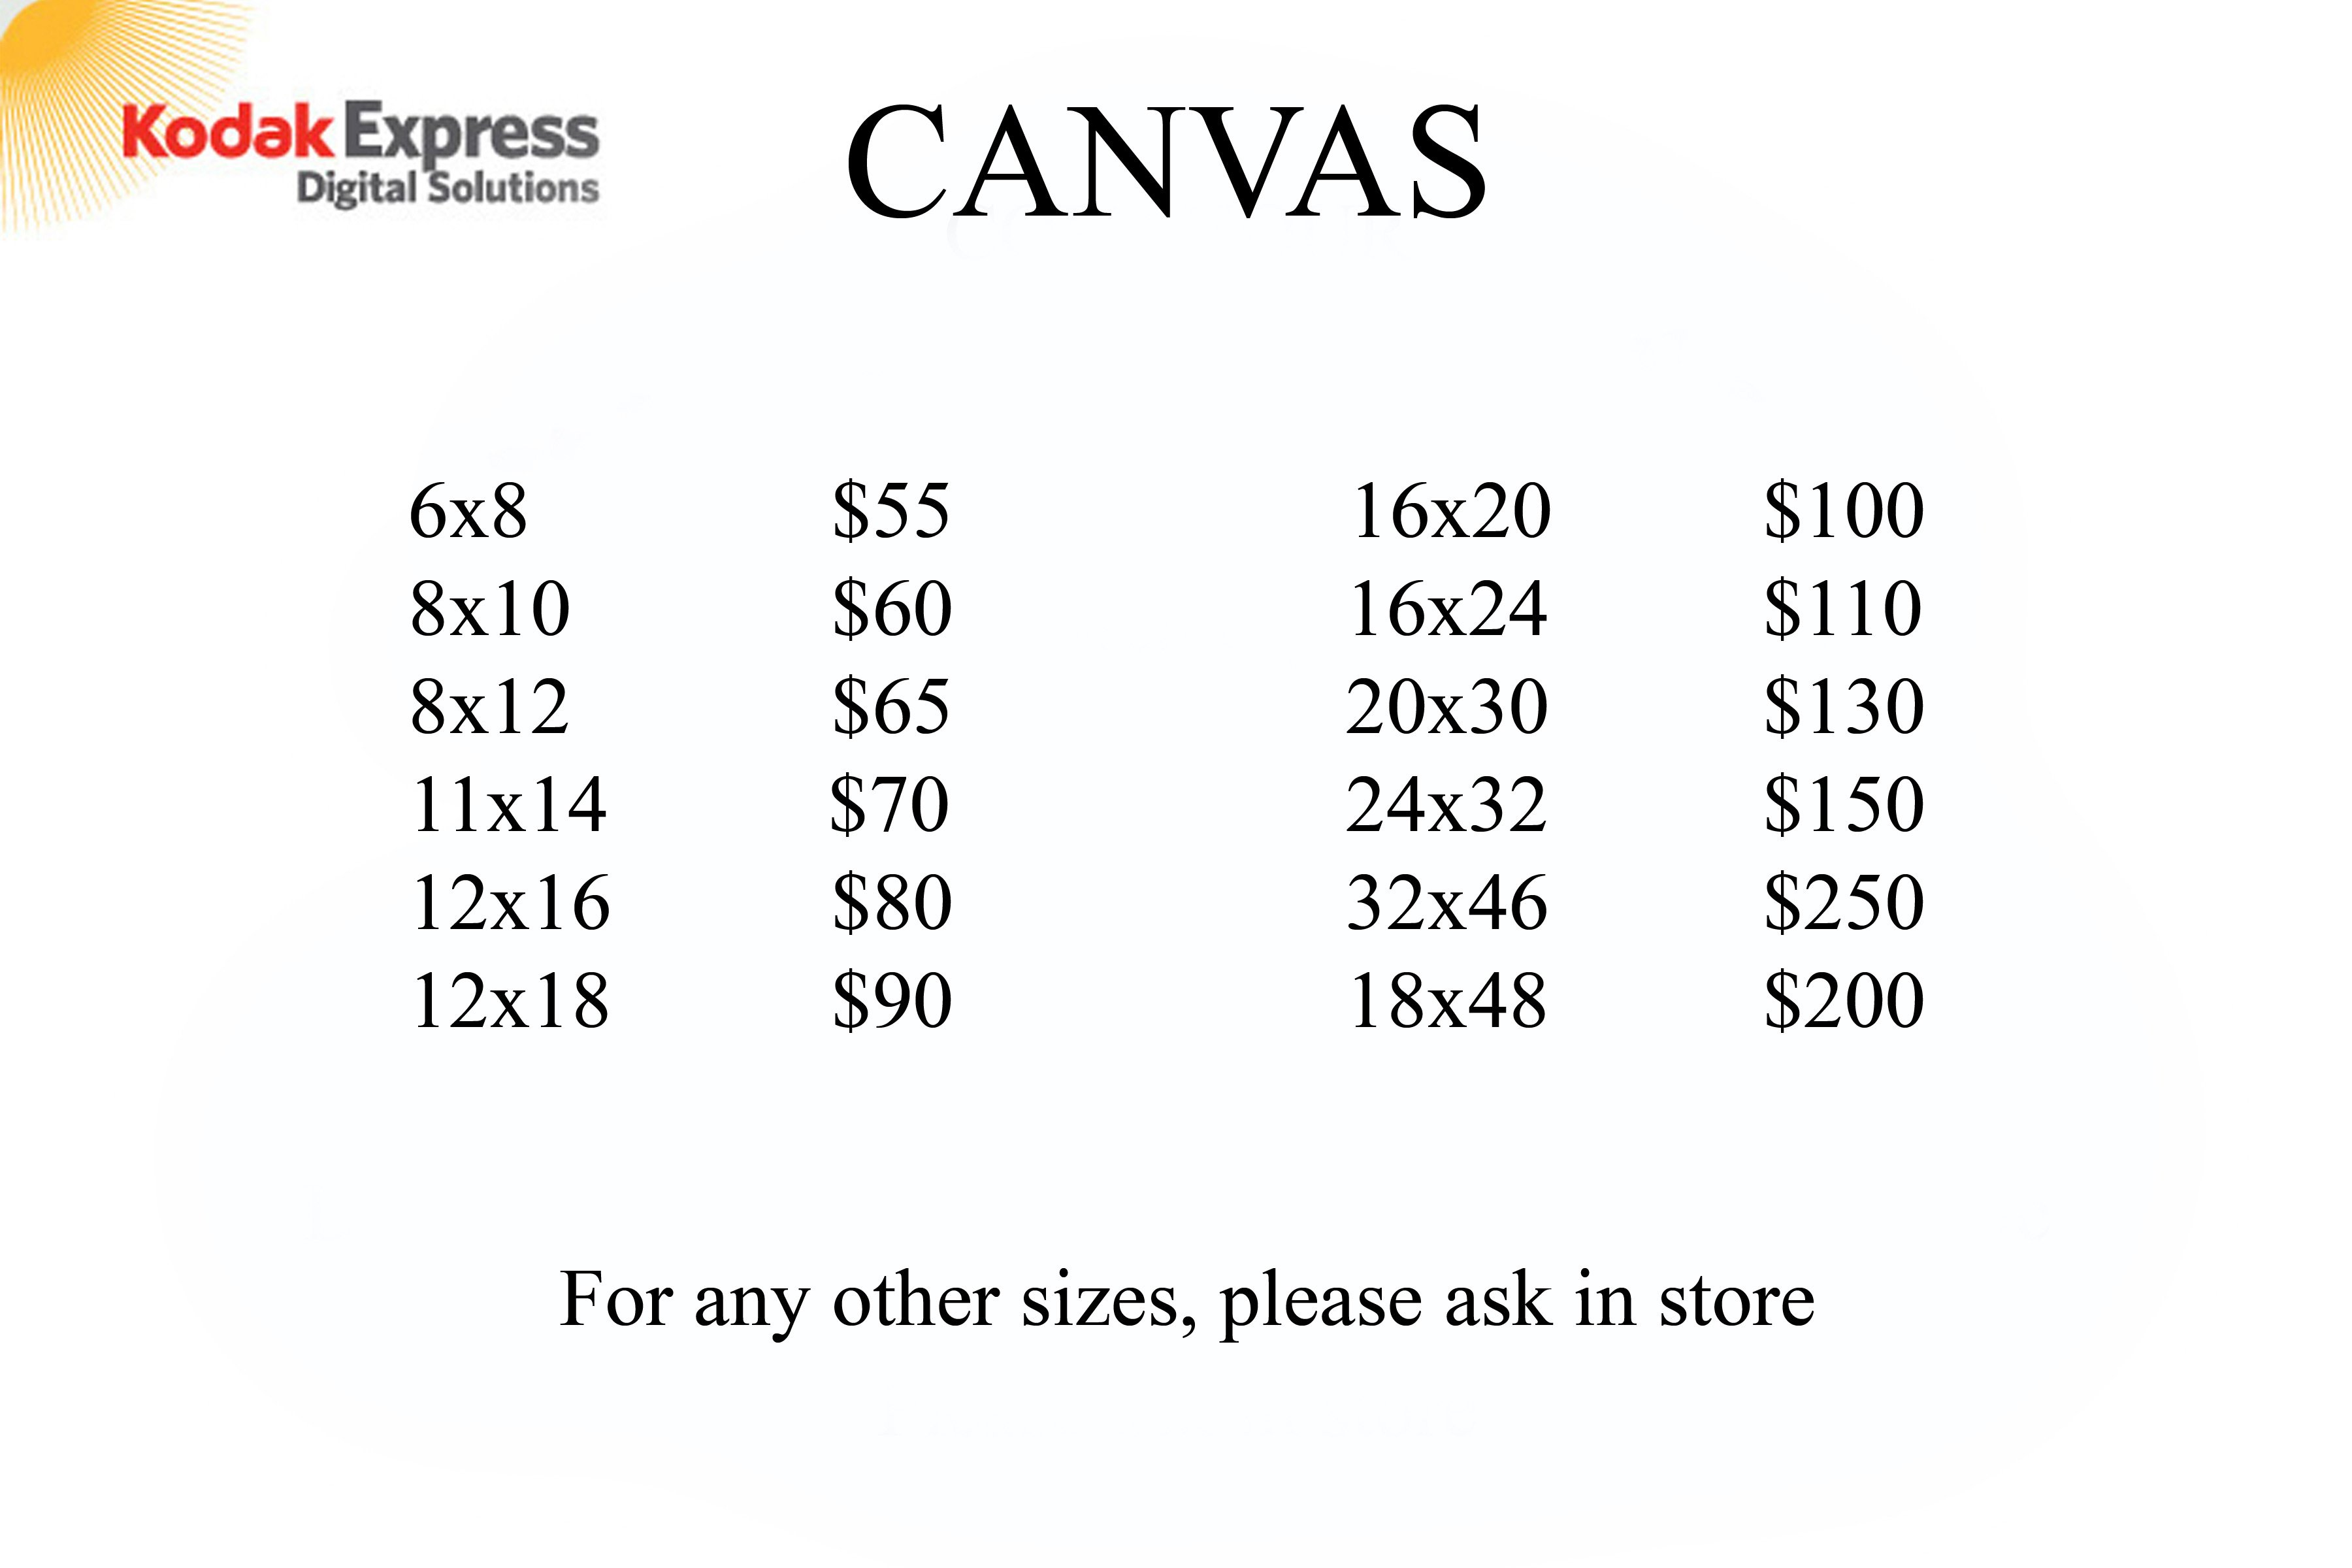 Kodak Express Digital Solutions' rate list for Canvas